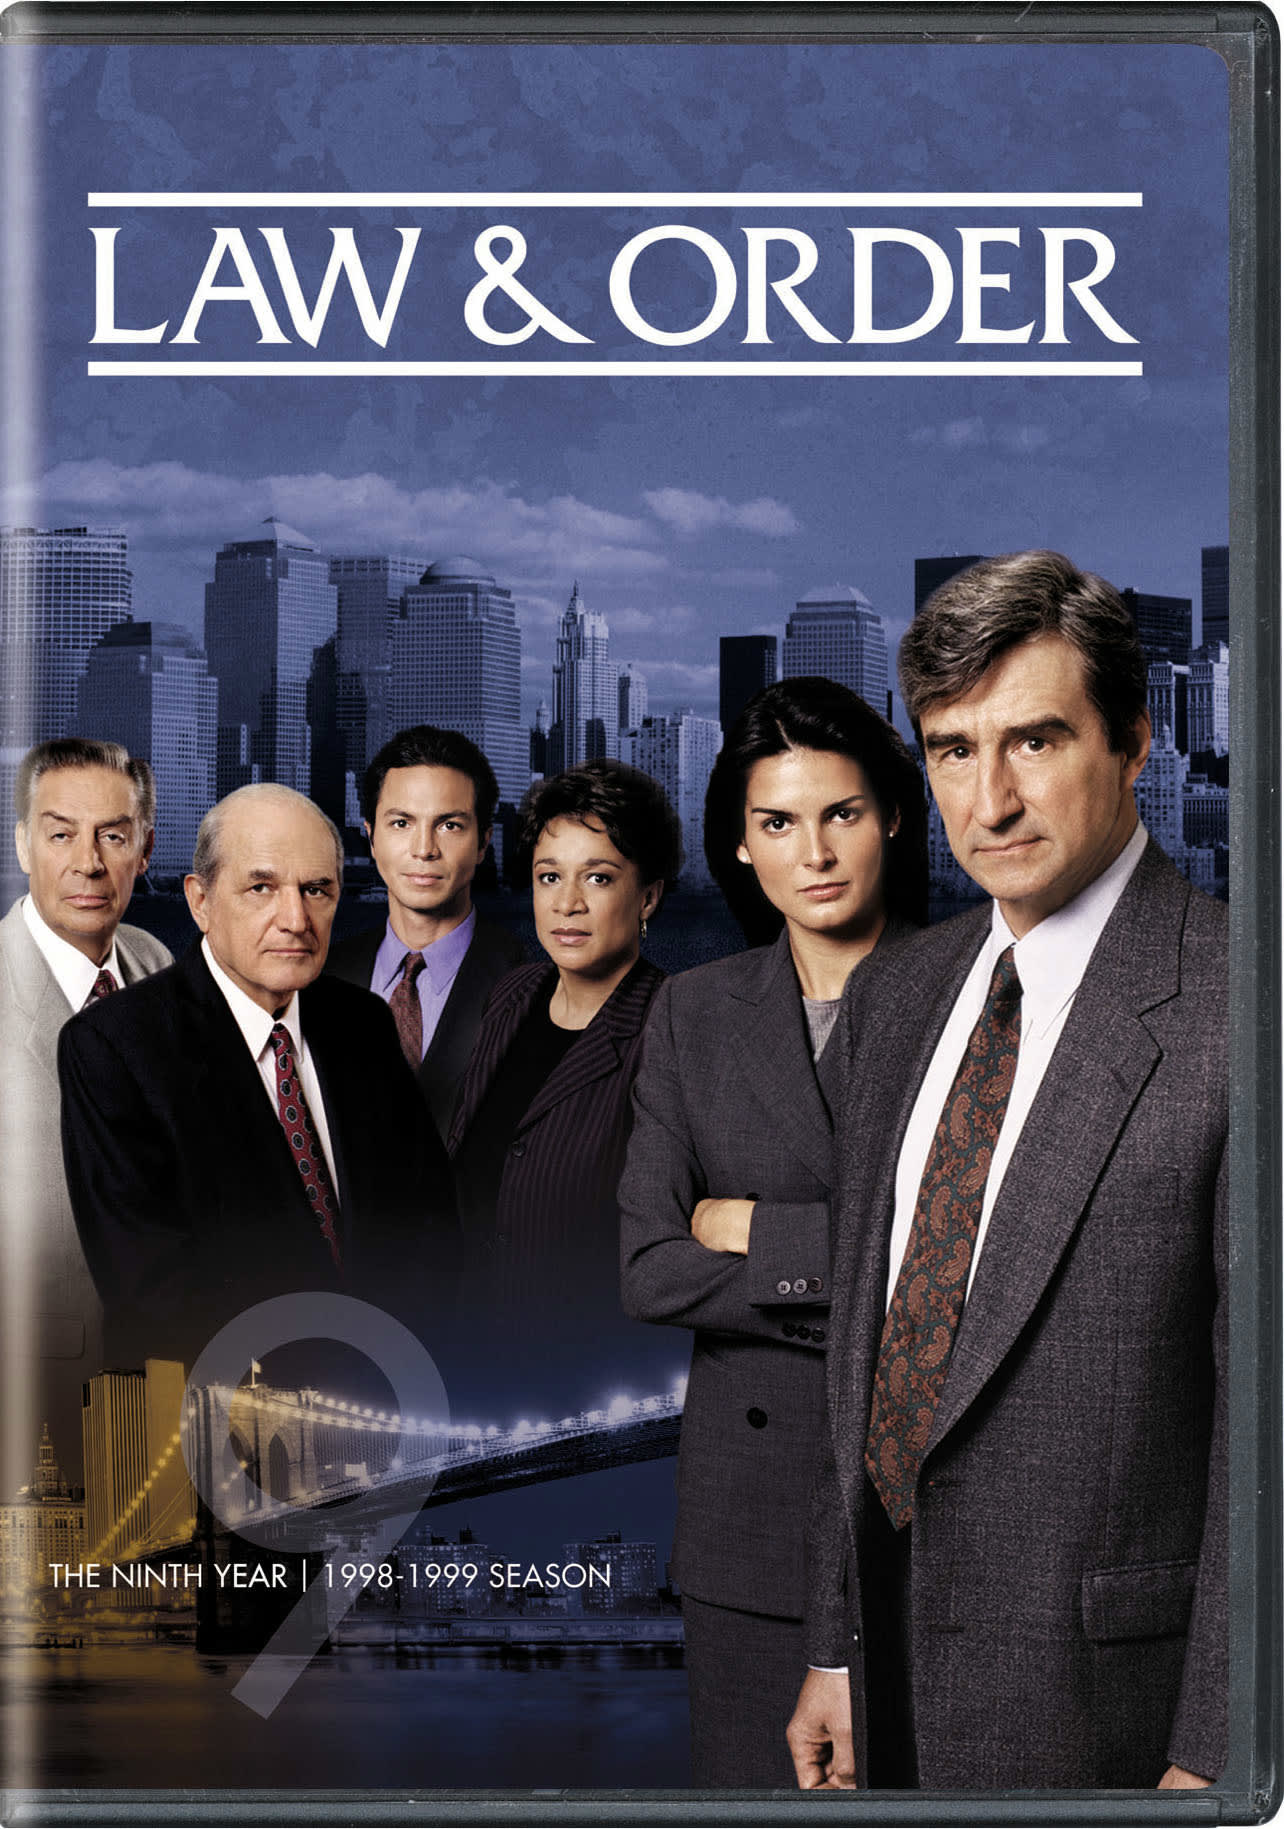 Law & Order: The Ninth Year [DVD]